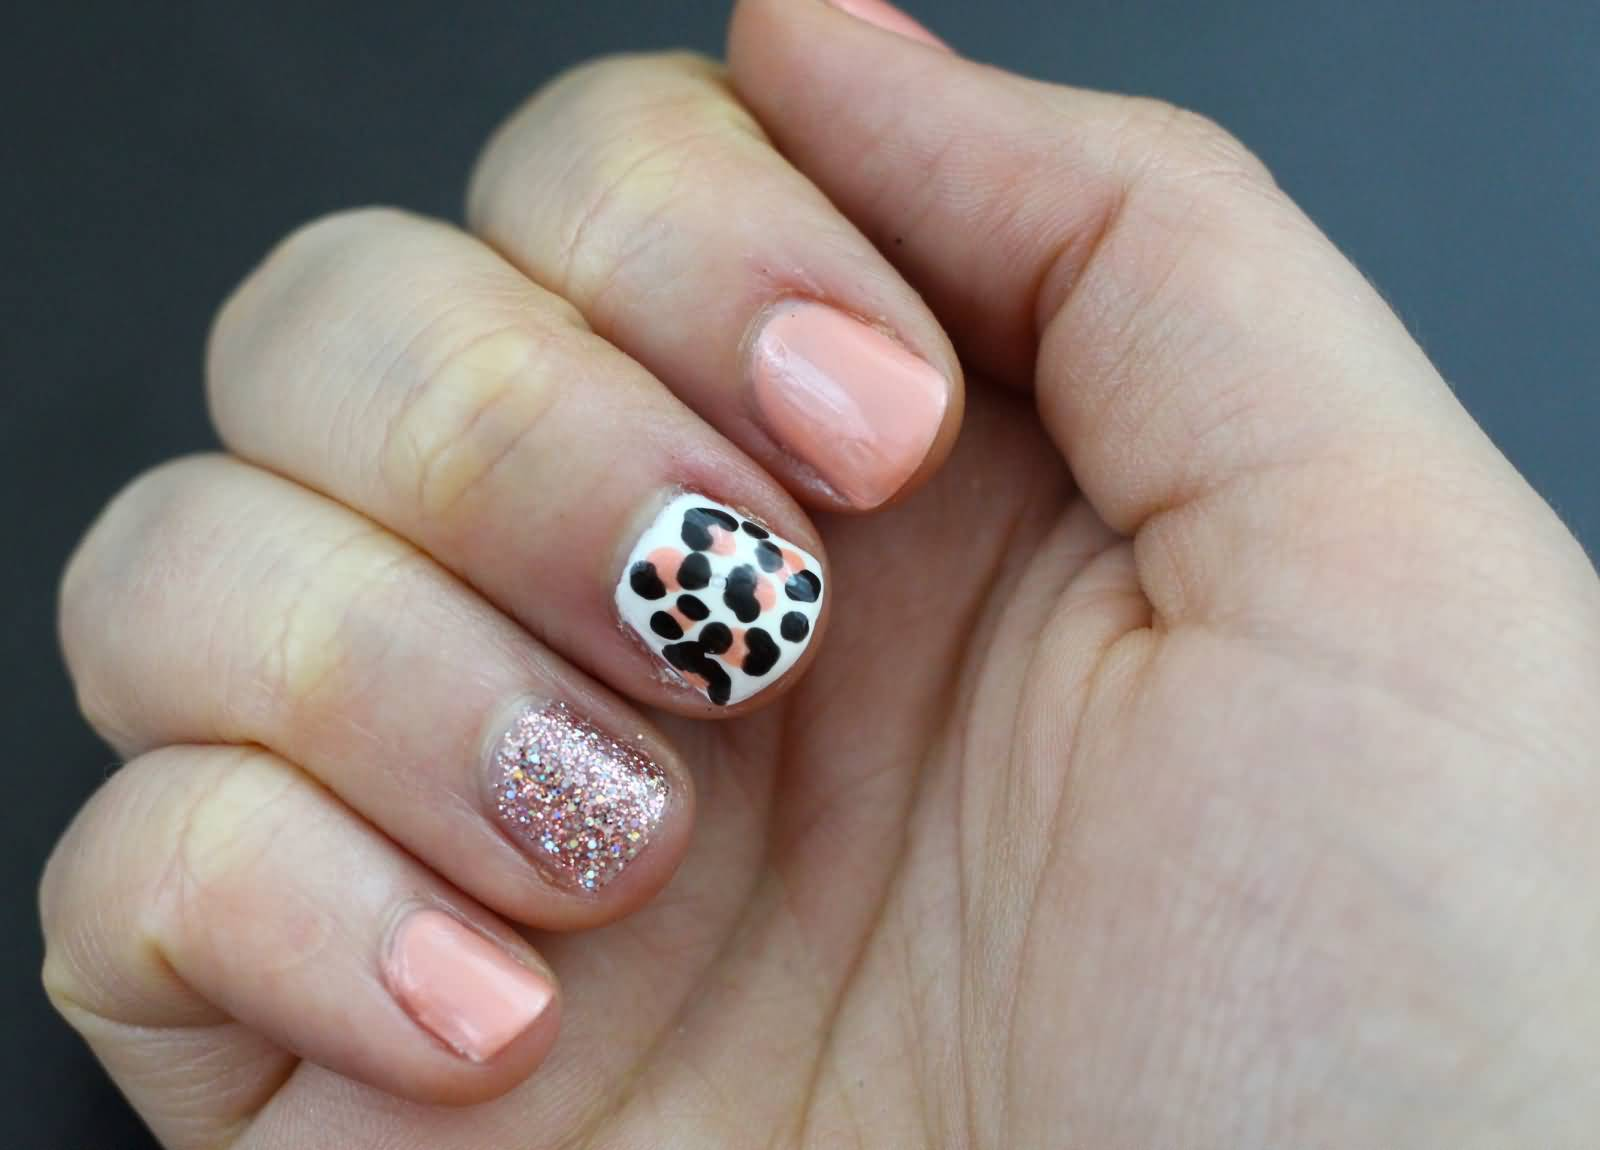 Fabulous Pink Nail Paint With Tiger Print Glitter Accent Nail Art